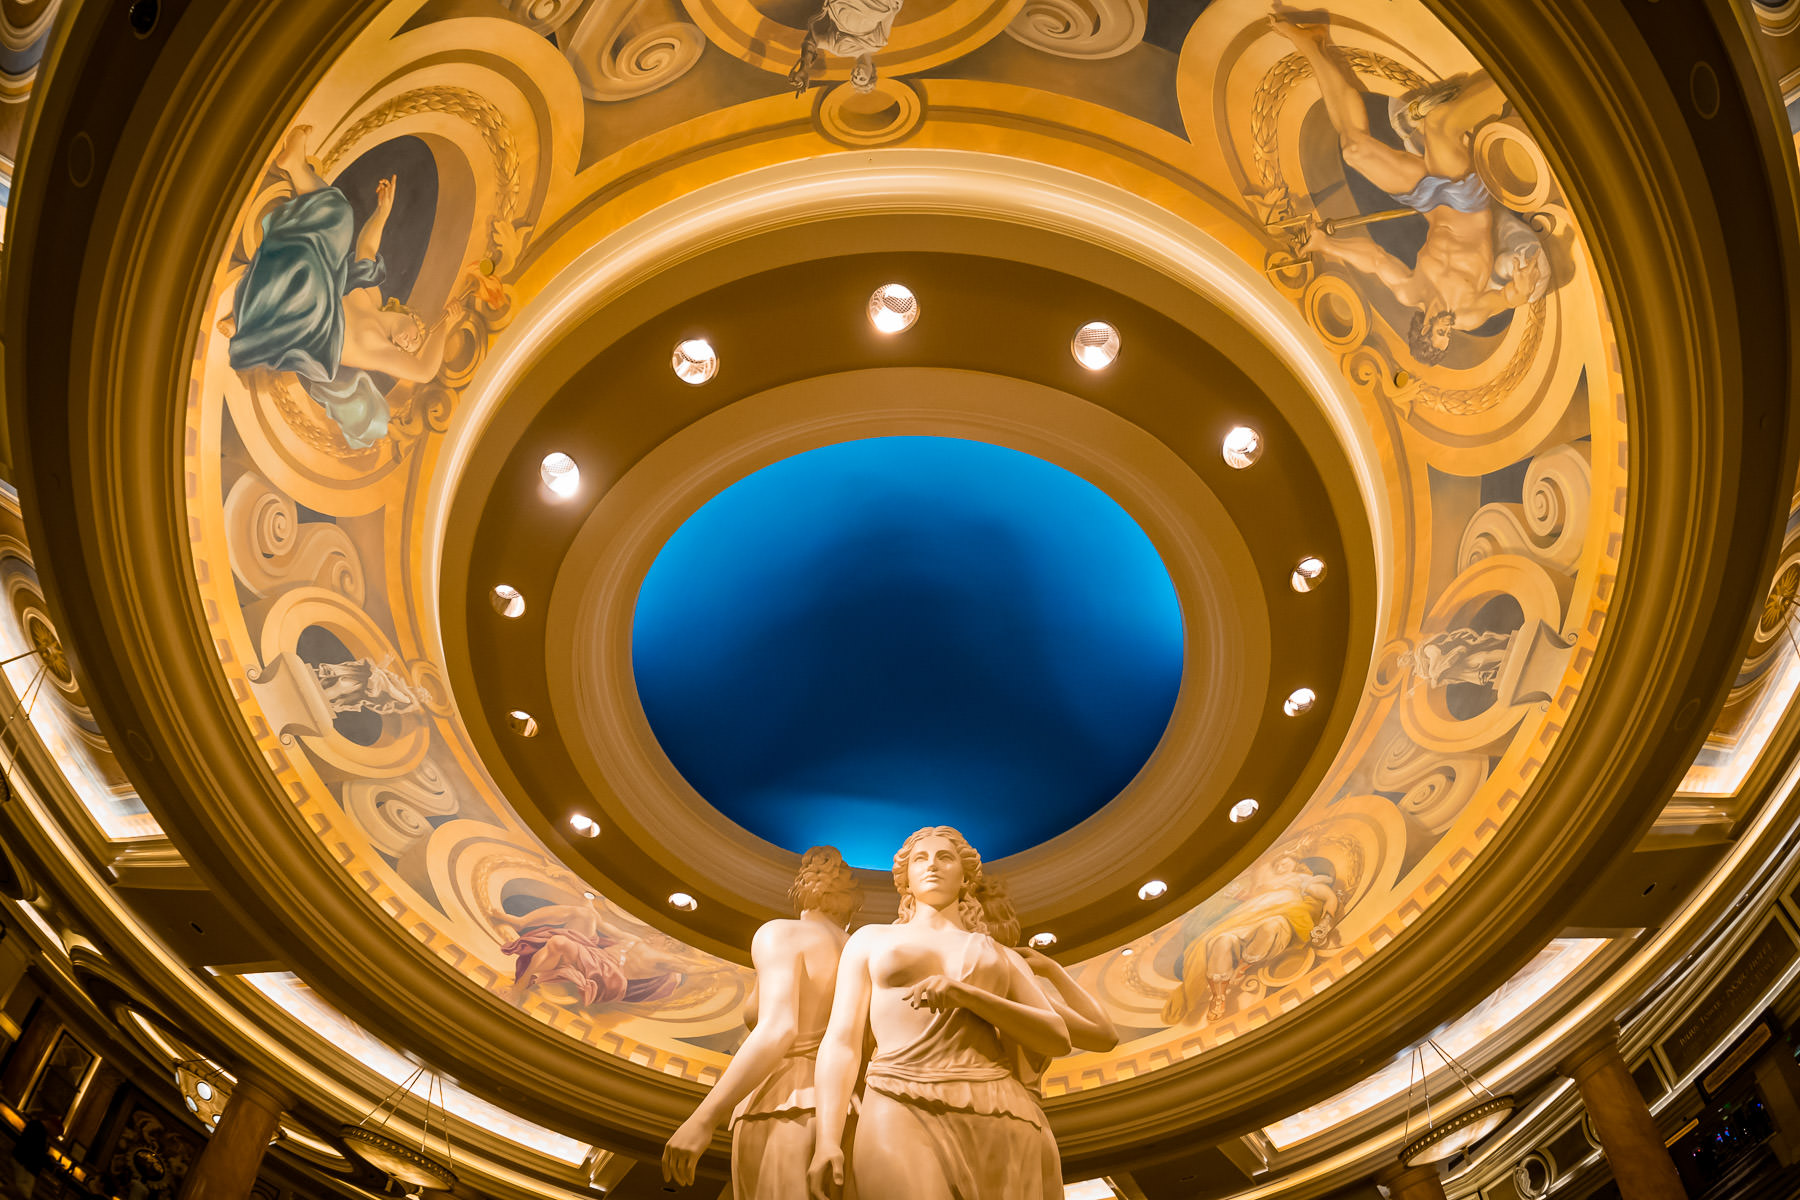 Statues under an ornate ceiling in the lobby of Caesars Palace, Las Vegas.